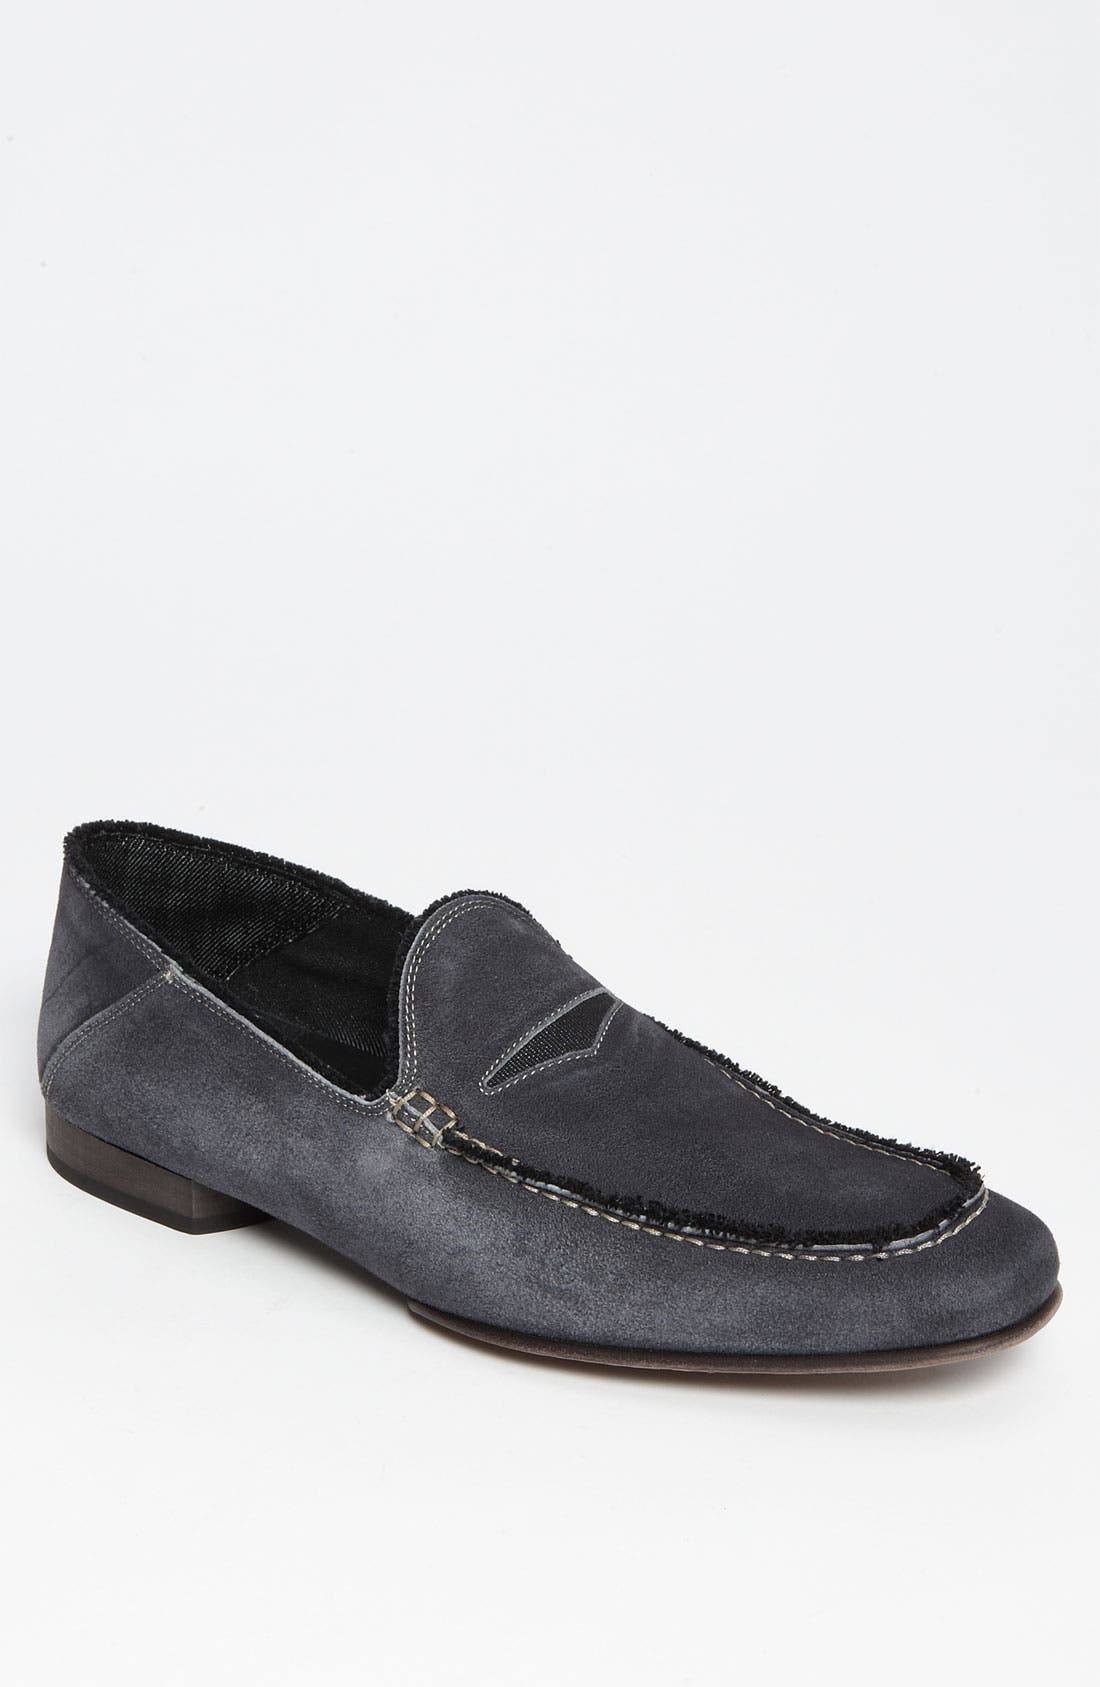 Main Image - Donald J Pliner 'Vian' Loafer